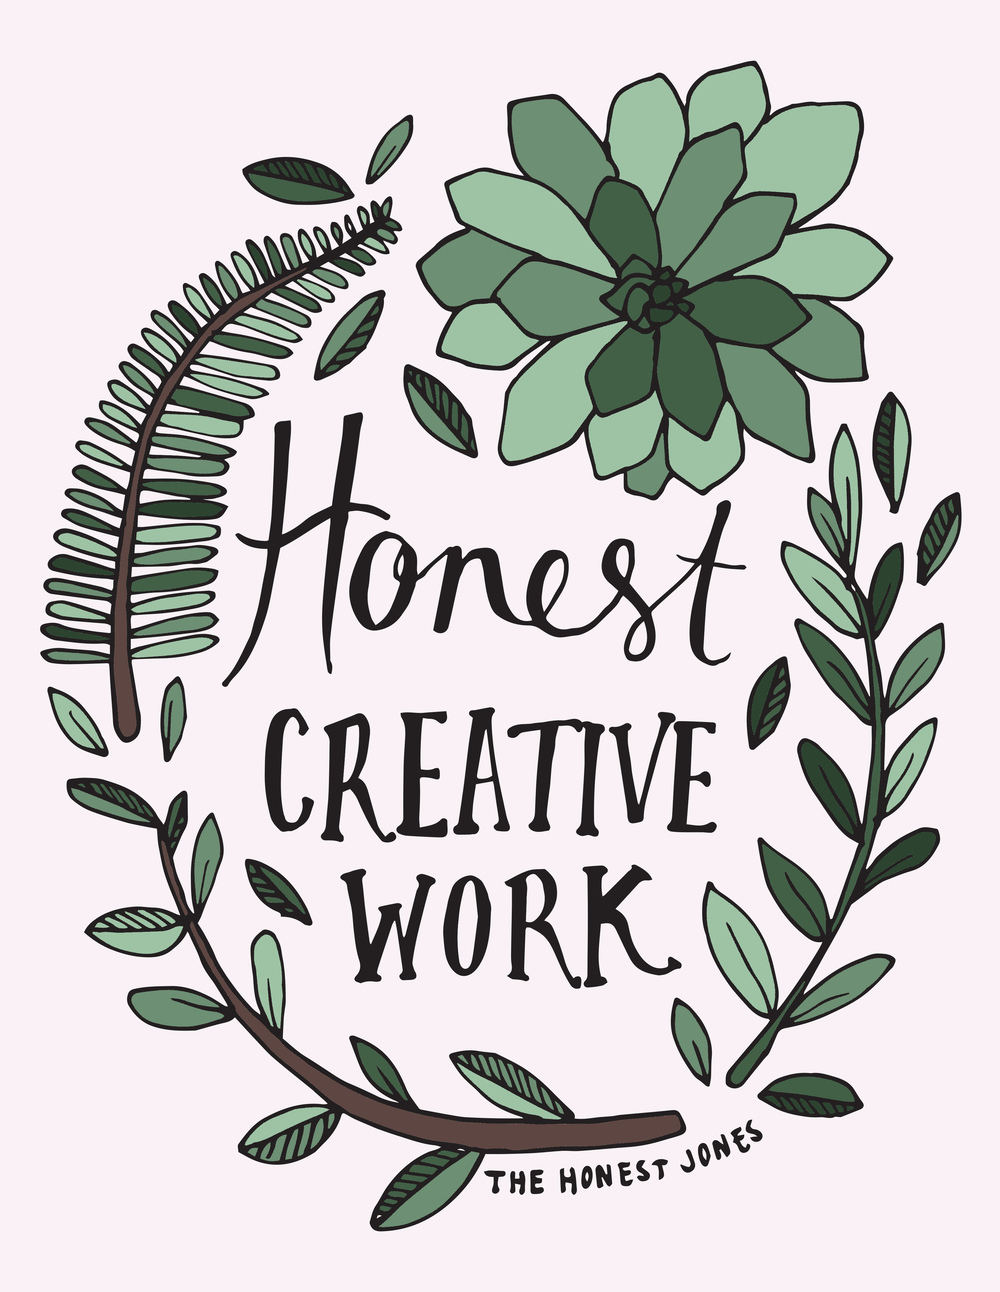 Illustration by Kate Baxter for The Honest Jones